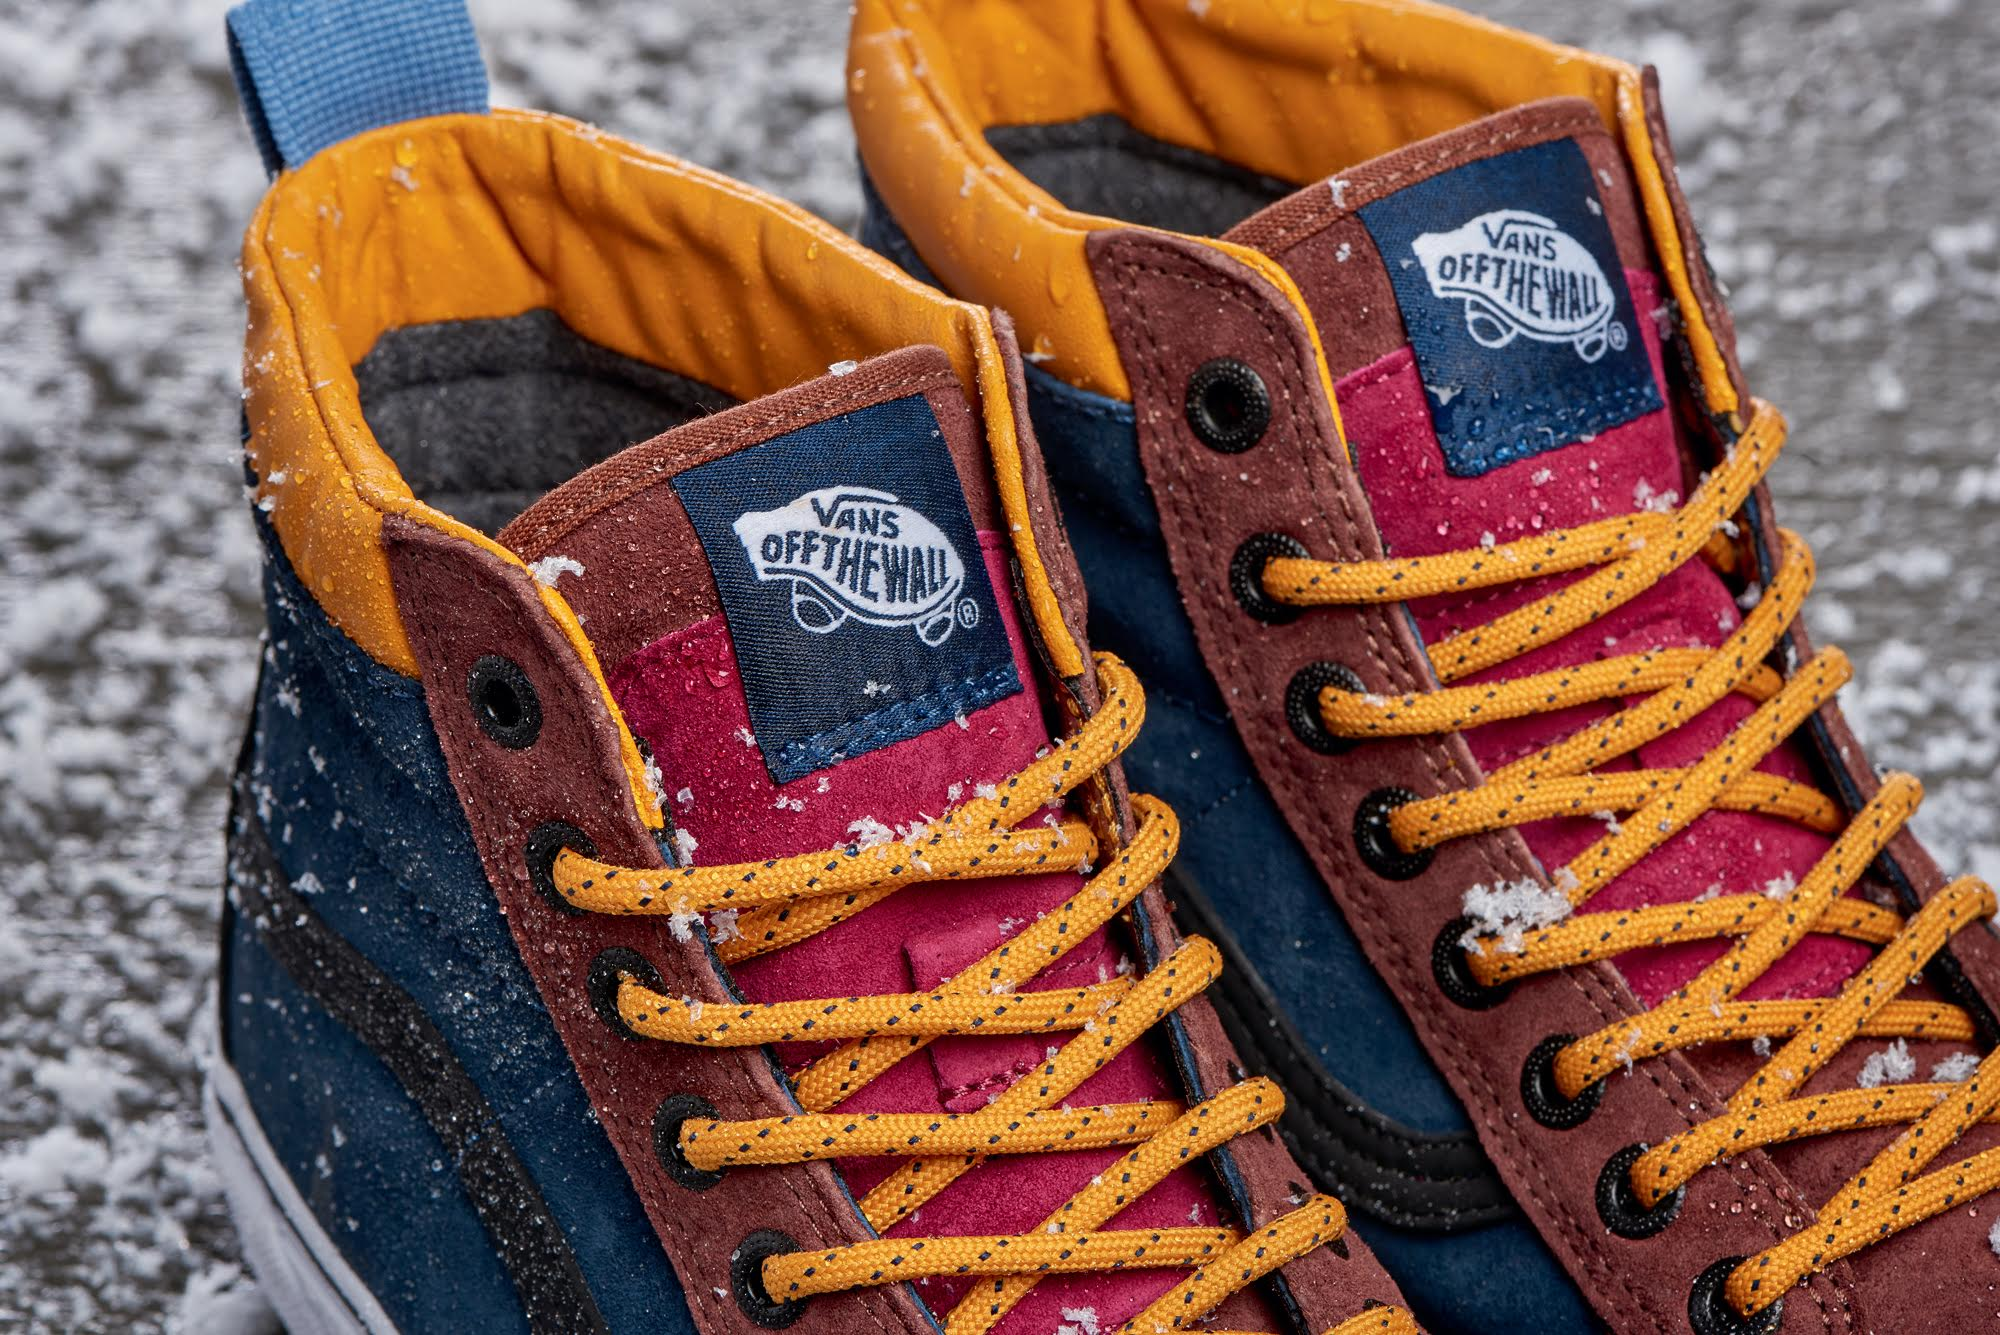 2490c263c06 Vans Expands the All Weather MTE Apparel and Footwear Offering for the  Upcoming Holiday Season. SPONSOR. ‹ ›